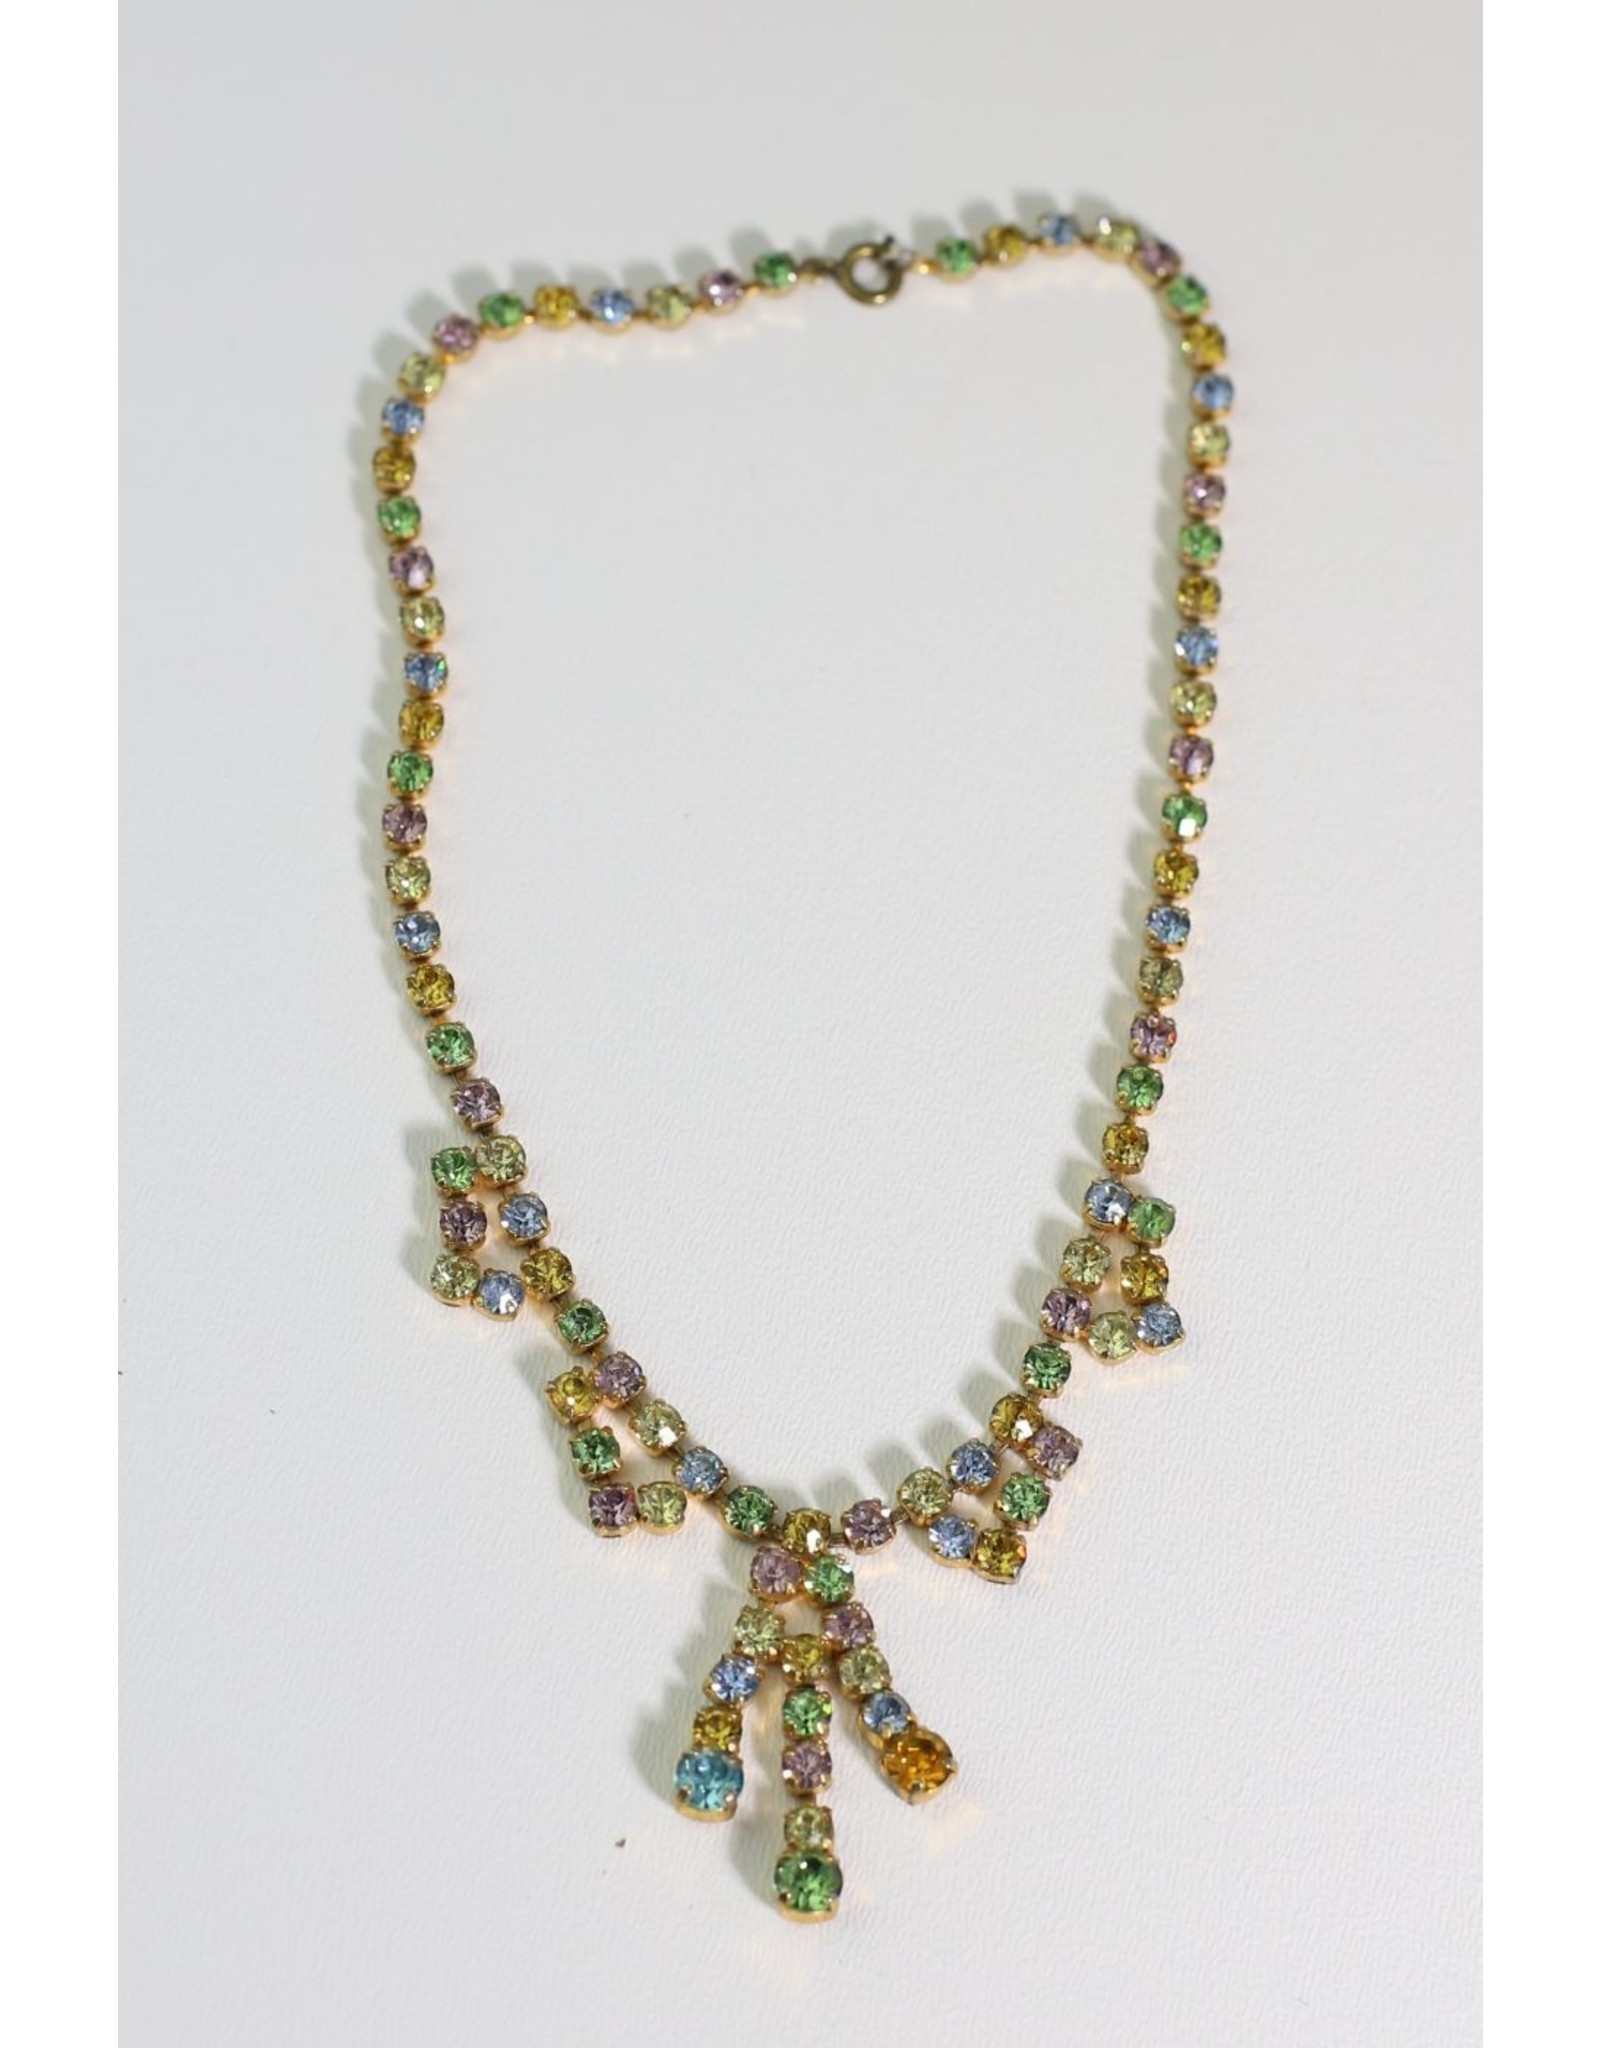 1950's Multi-Color Rhinestone Necklace